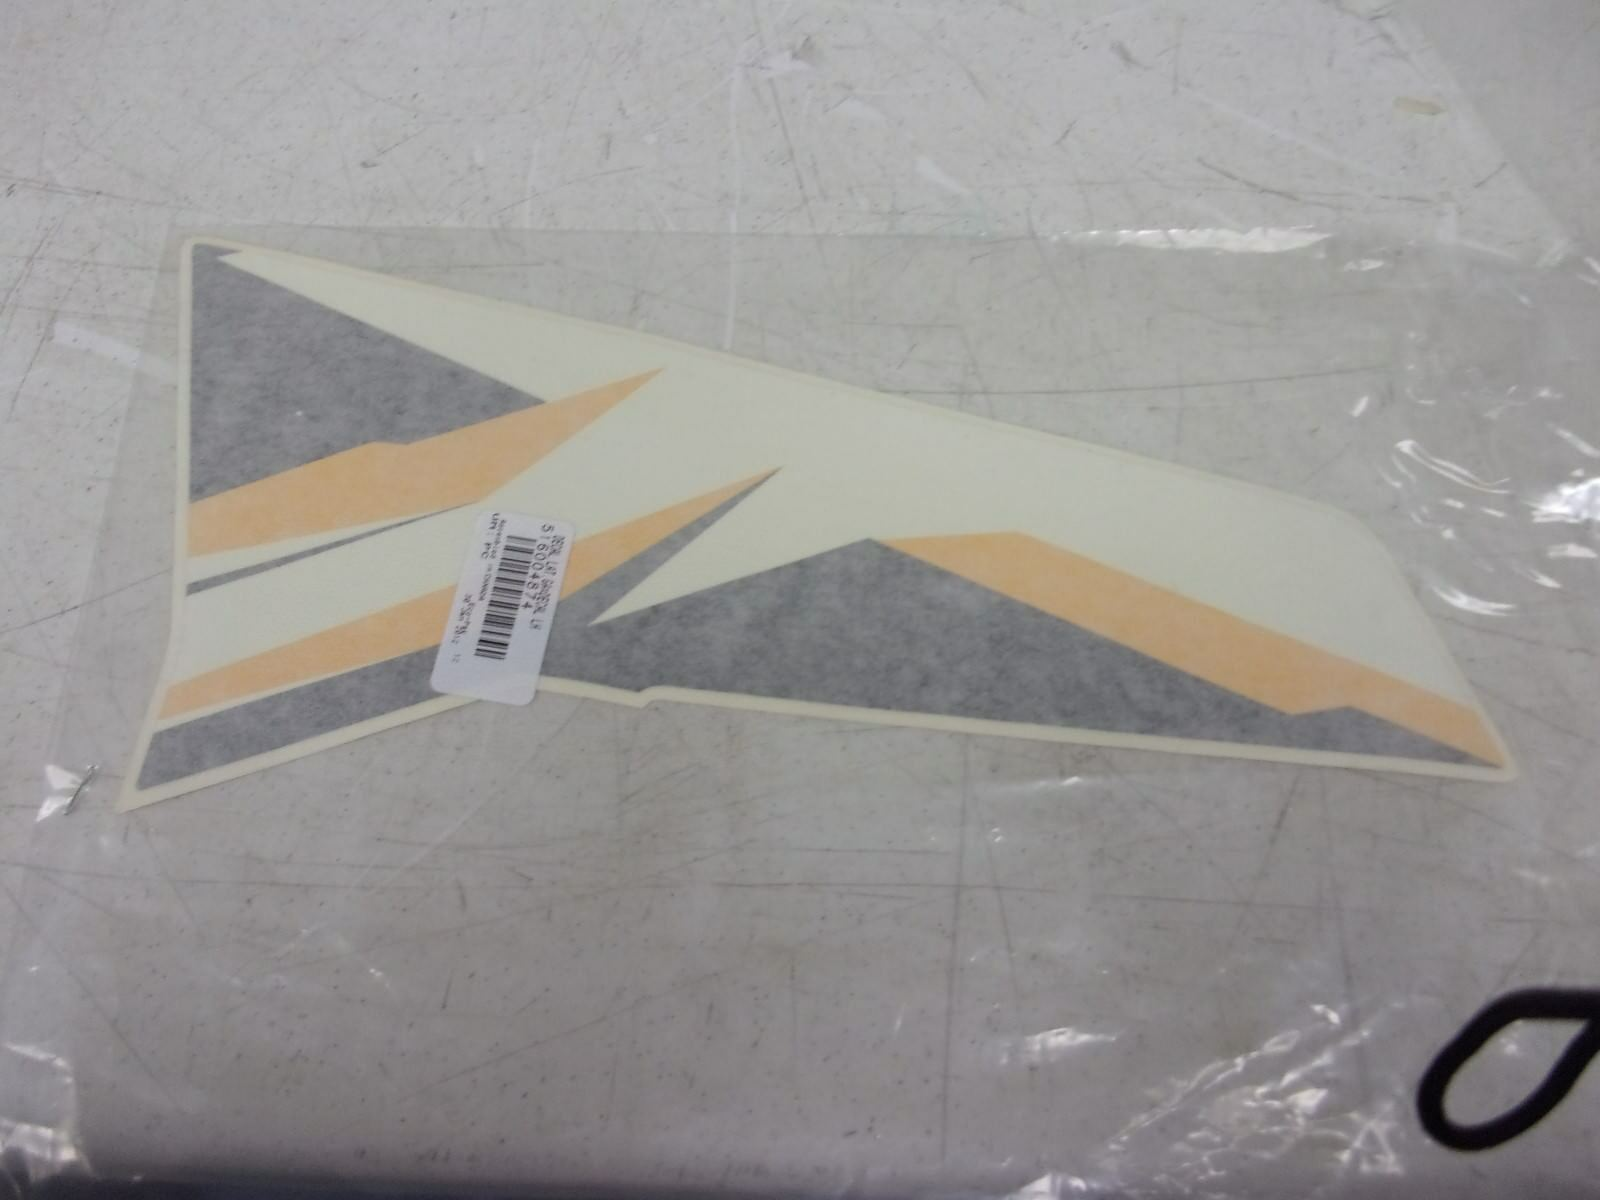 Ski-doo snowmobile LH Front Upper Side Decal 516003751